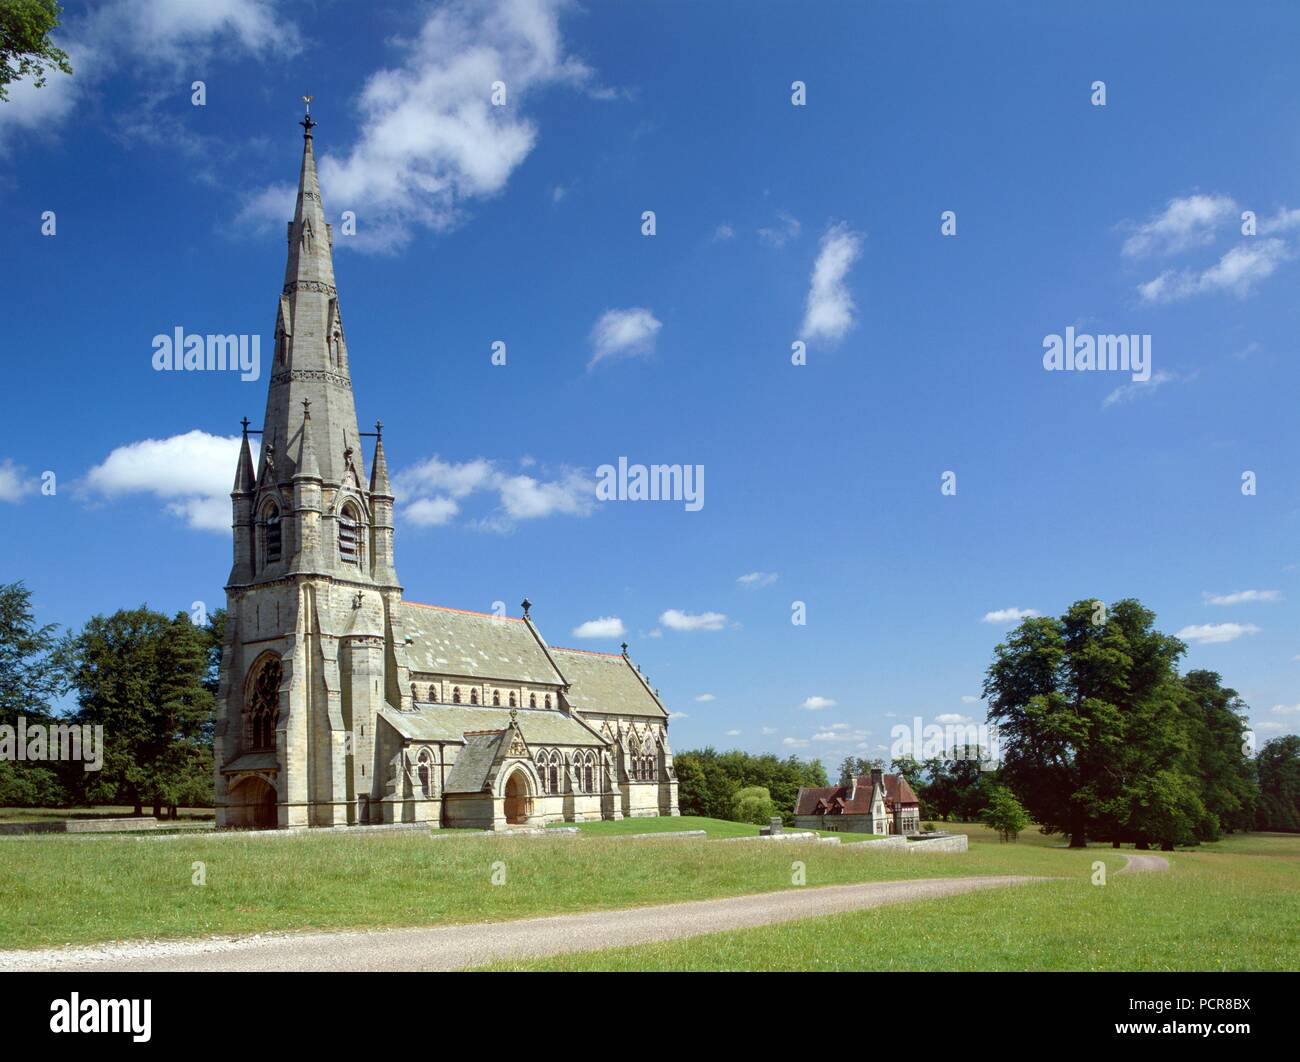 St Mary's Church, Studley Royal, North Yorkshire, c1980-c2017. Exterior view of the Gothic Revival church from the south-west. St Mary's Church was designed by William Burges in the 1870s. - Stock Image